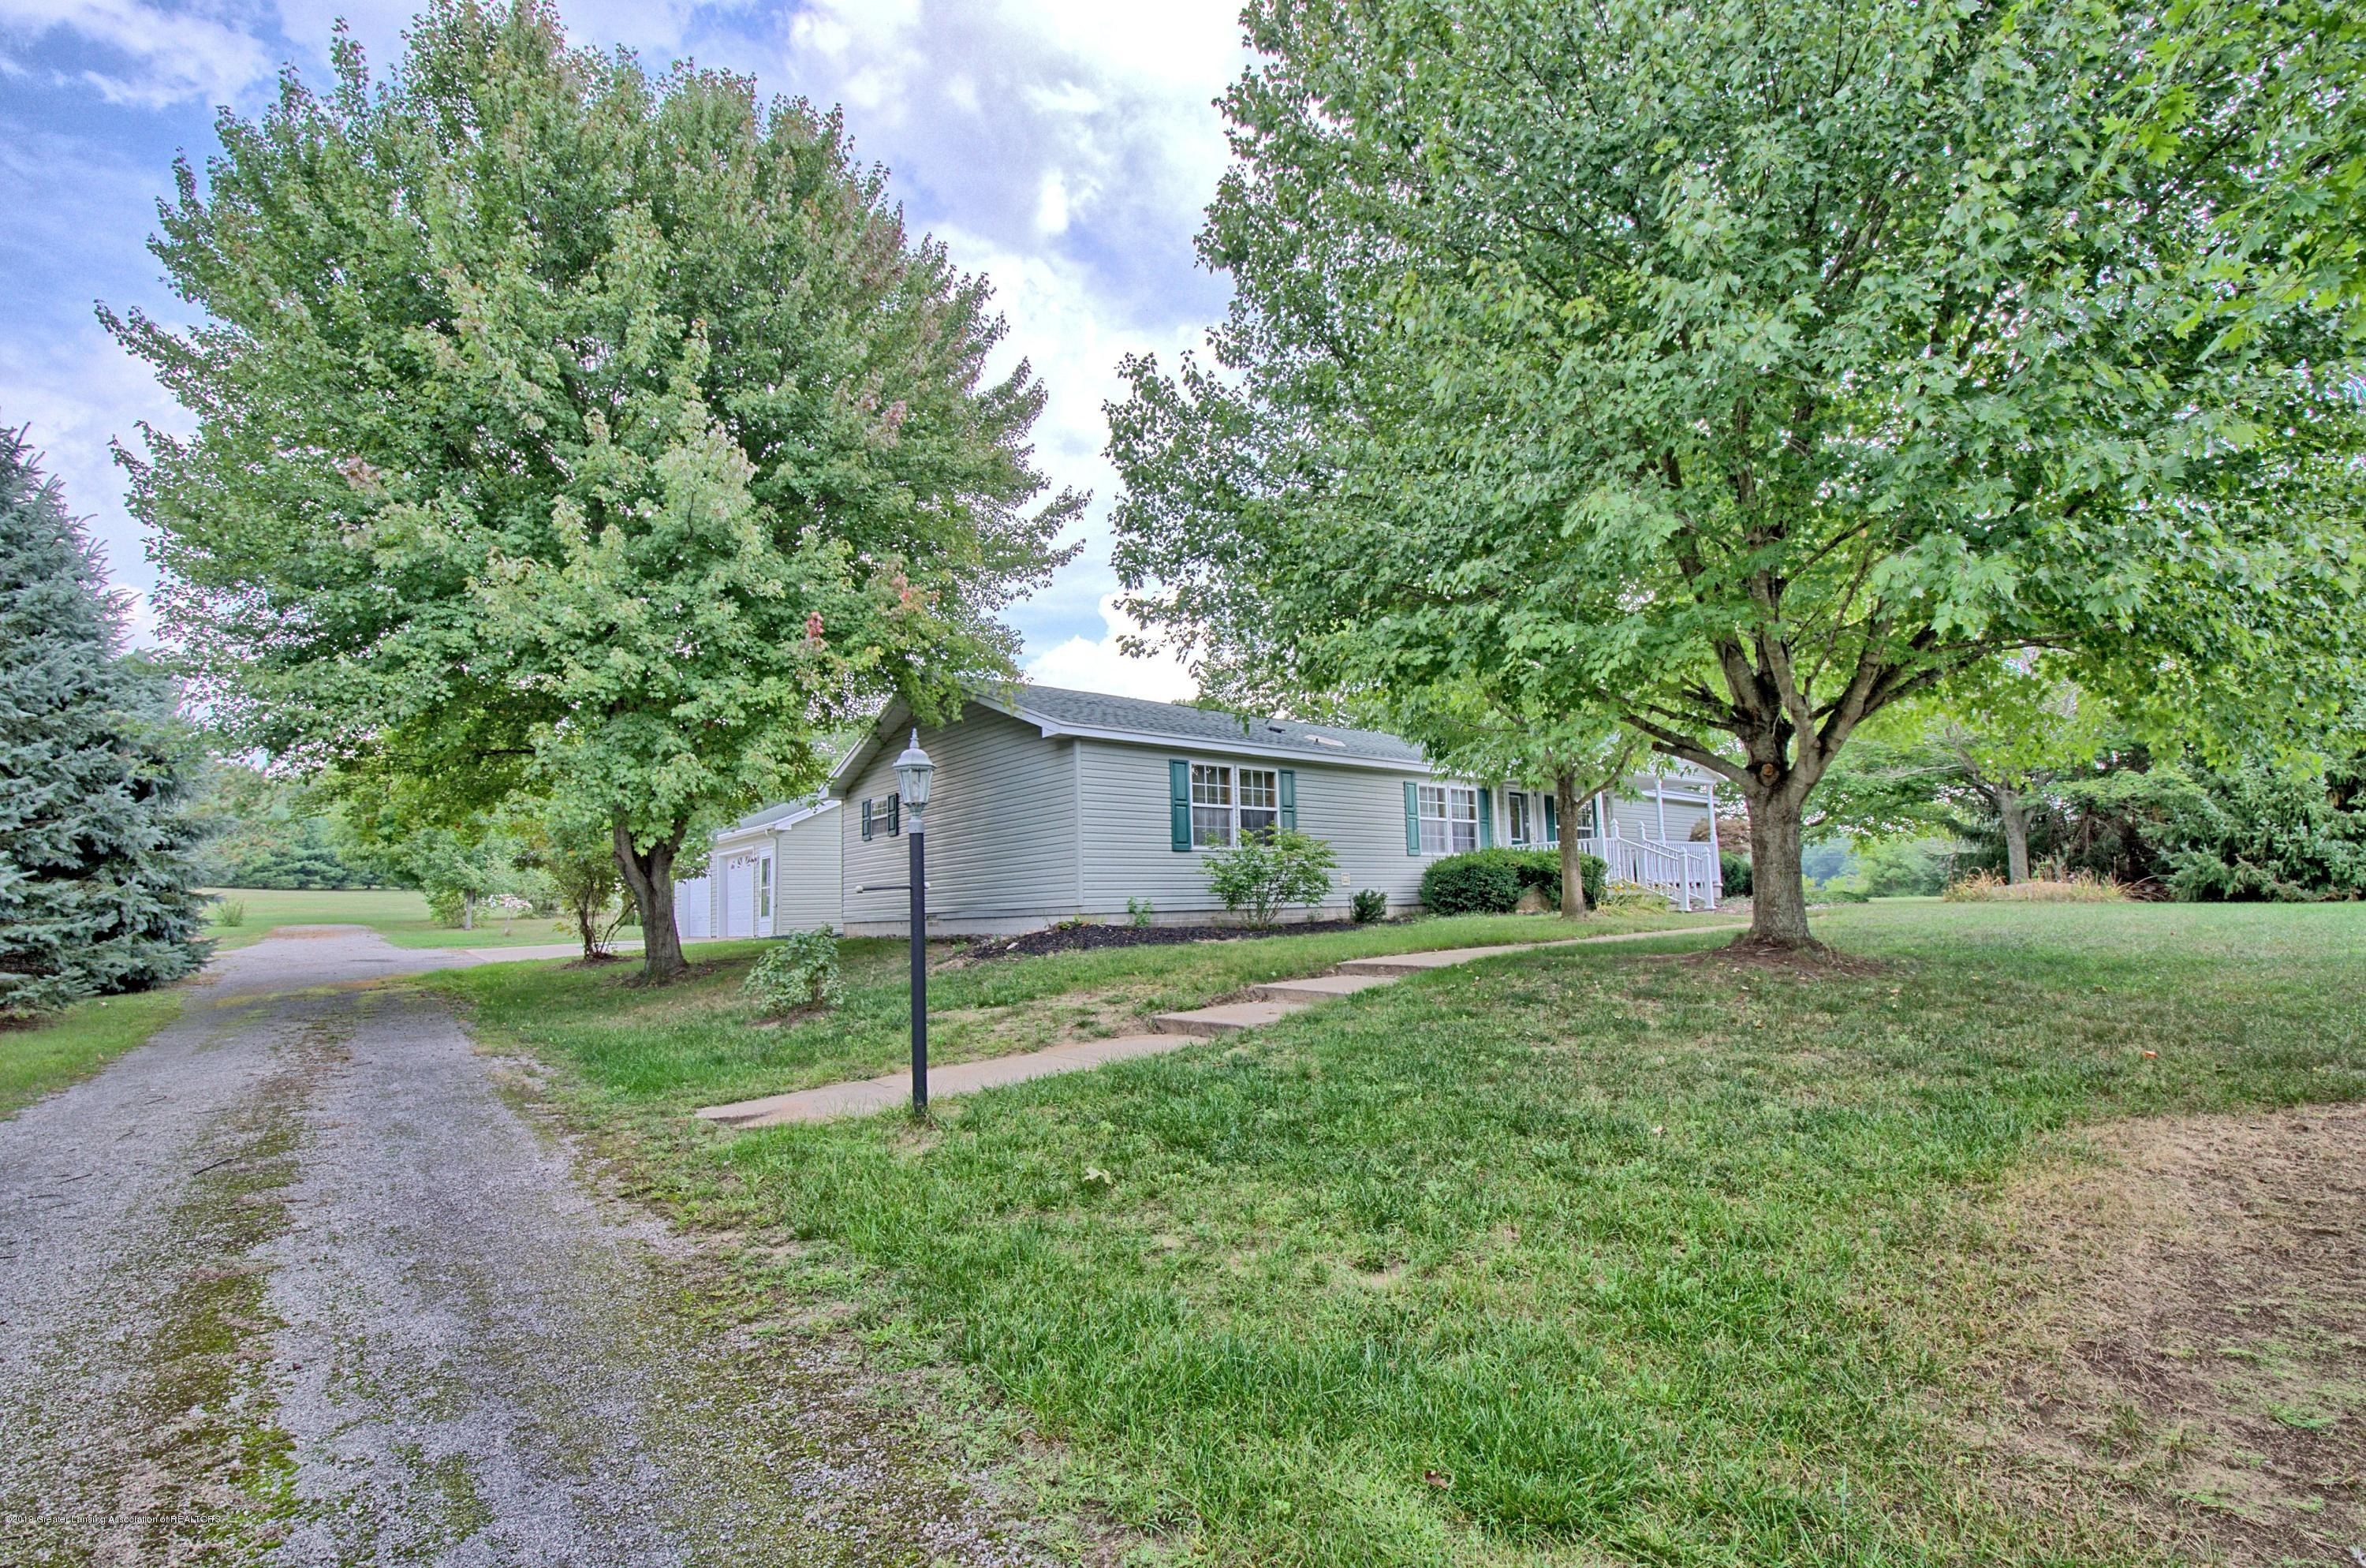 4860 Old Plank Rd - Driveway - 29